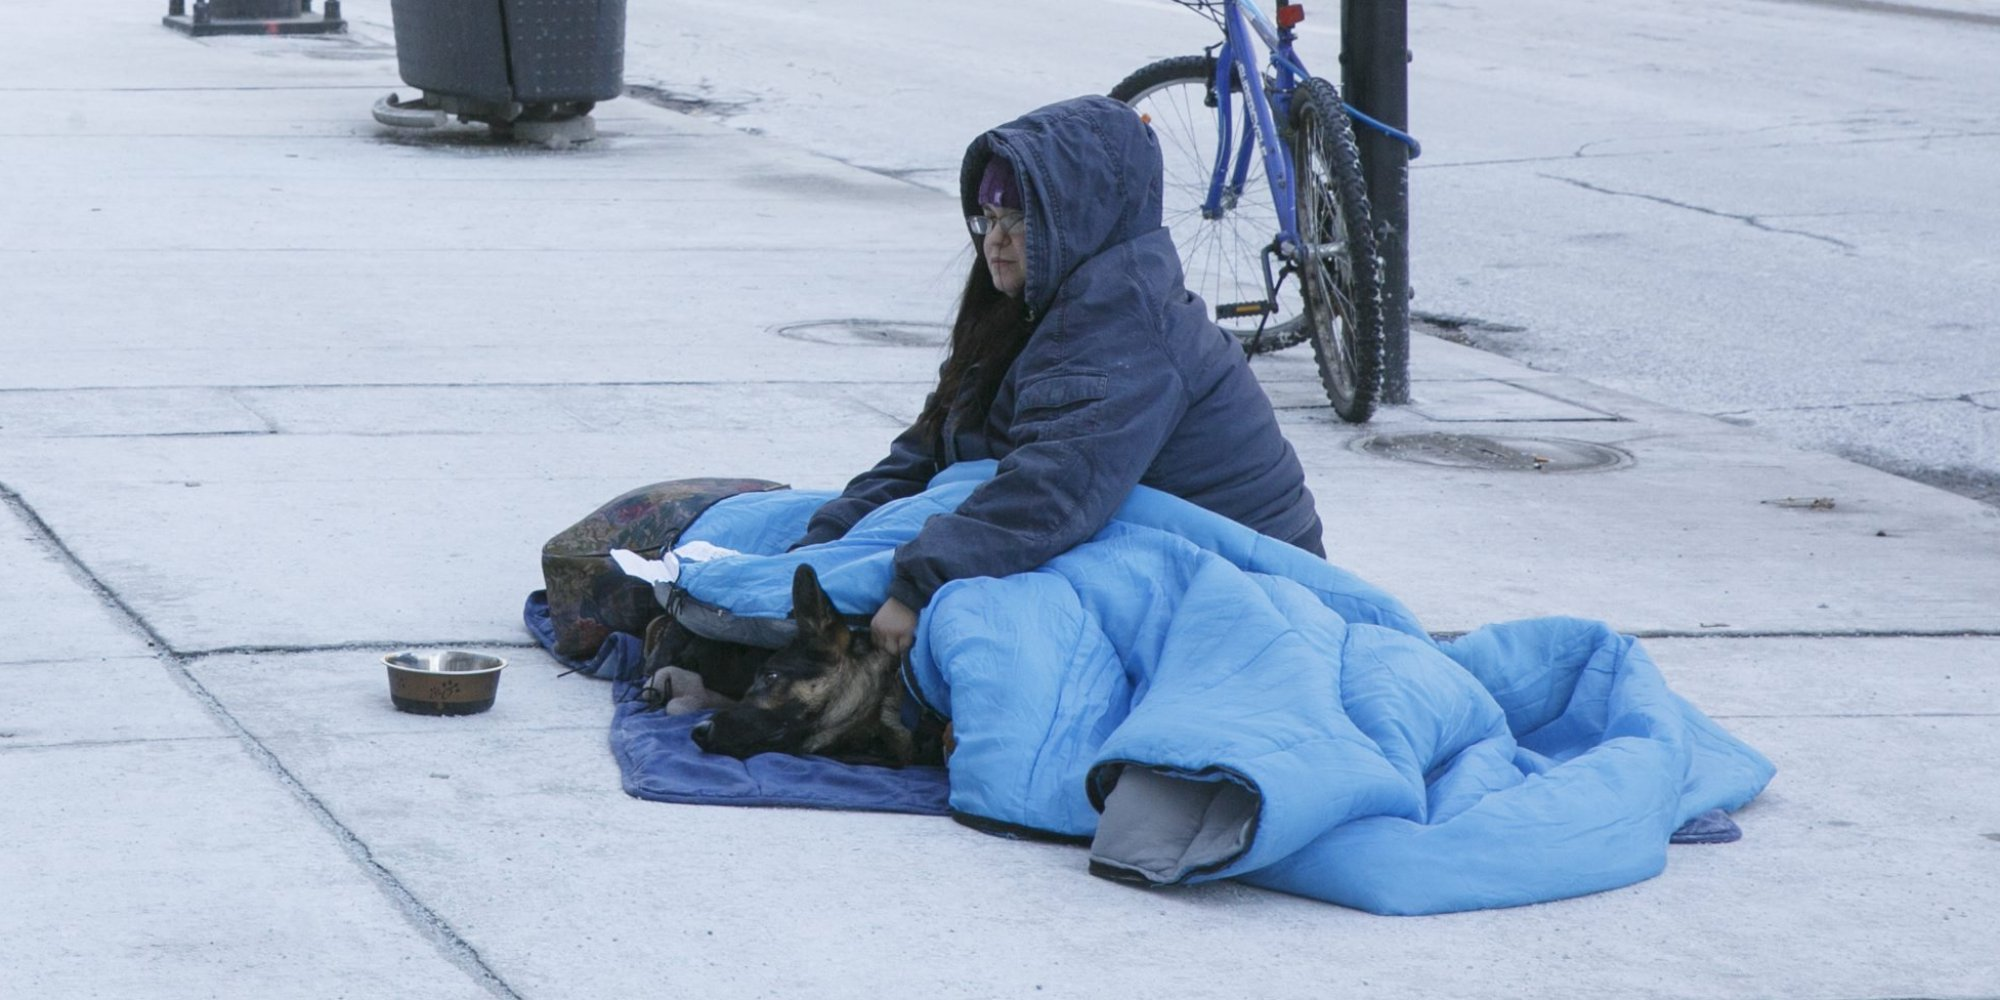 6 Vital Survival Tips we can Learn from the Homeless